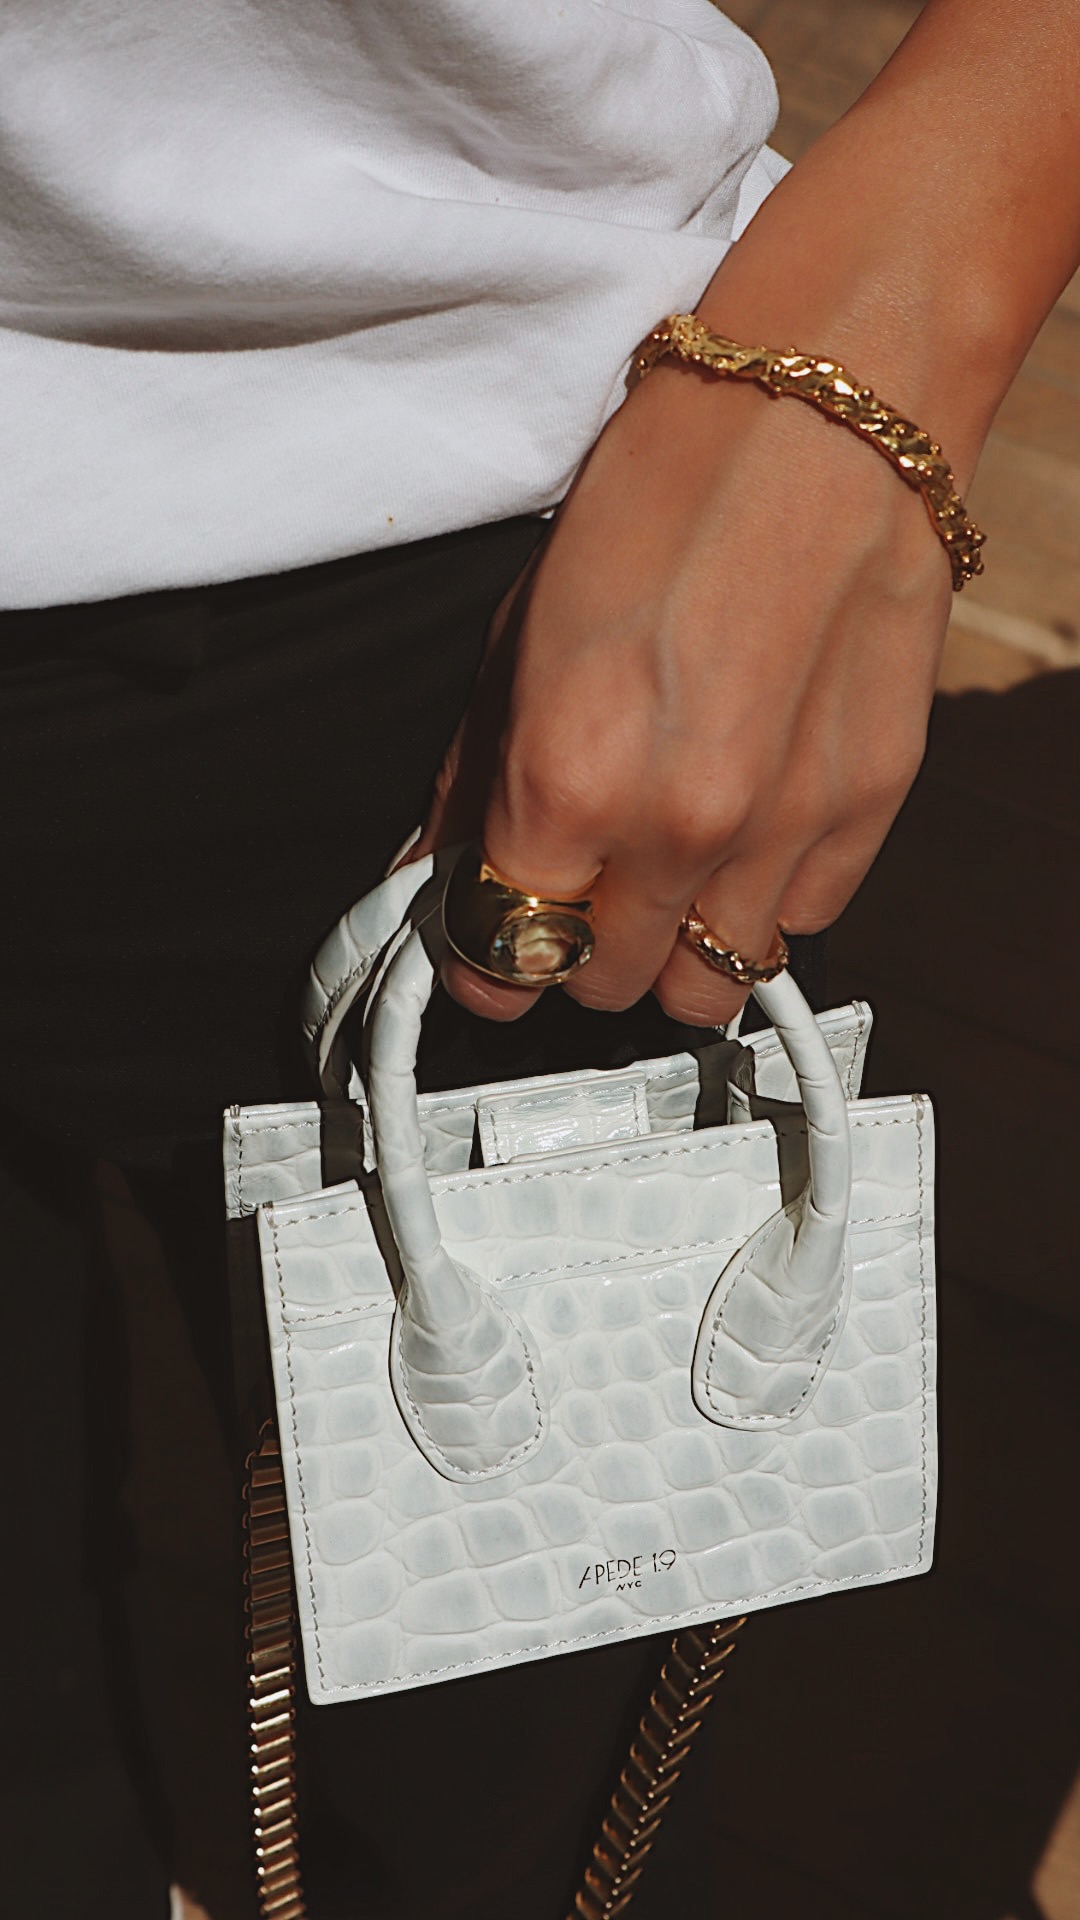 White Croc Poker Face Mini Tote by APEDE MOD on curated-crowd.com